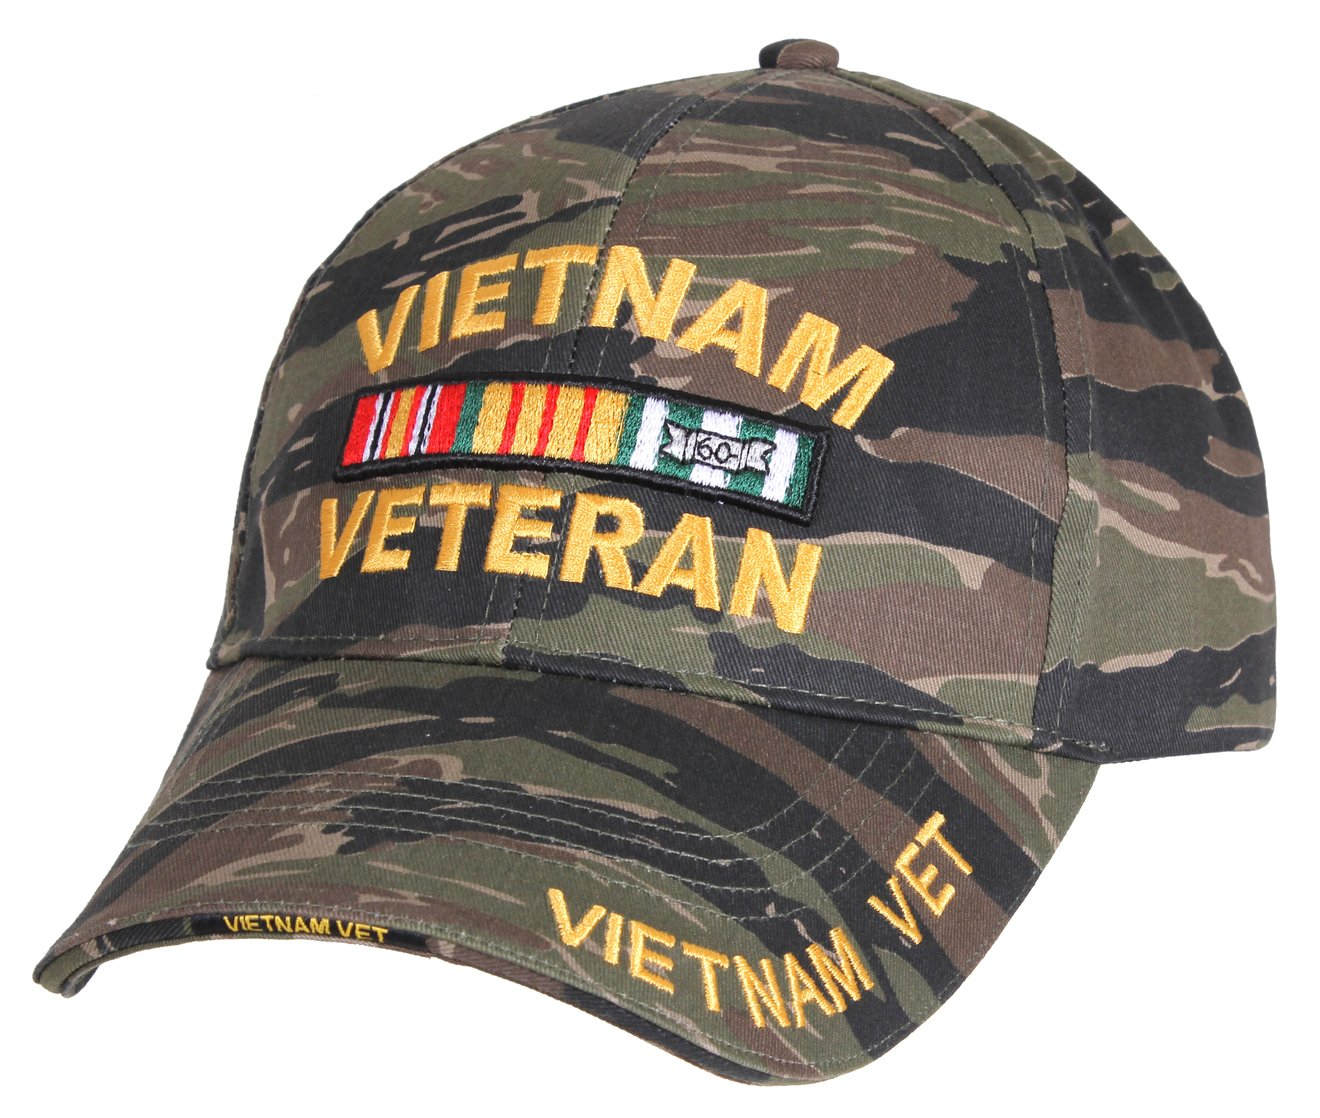 a18035e1157 Amazon.com   Rothco Deluxe Low Profile Vietnam Veteran Cap   Sports    Outdoors